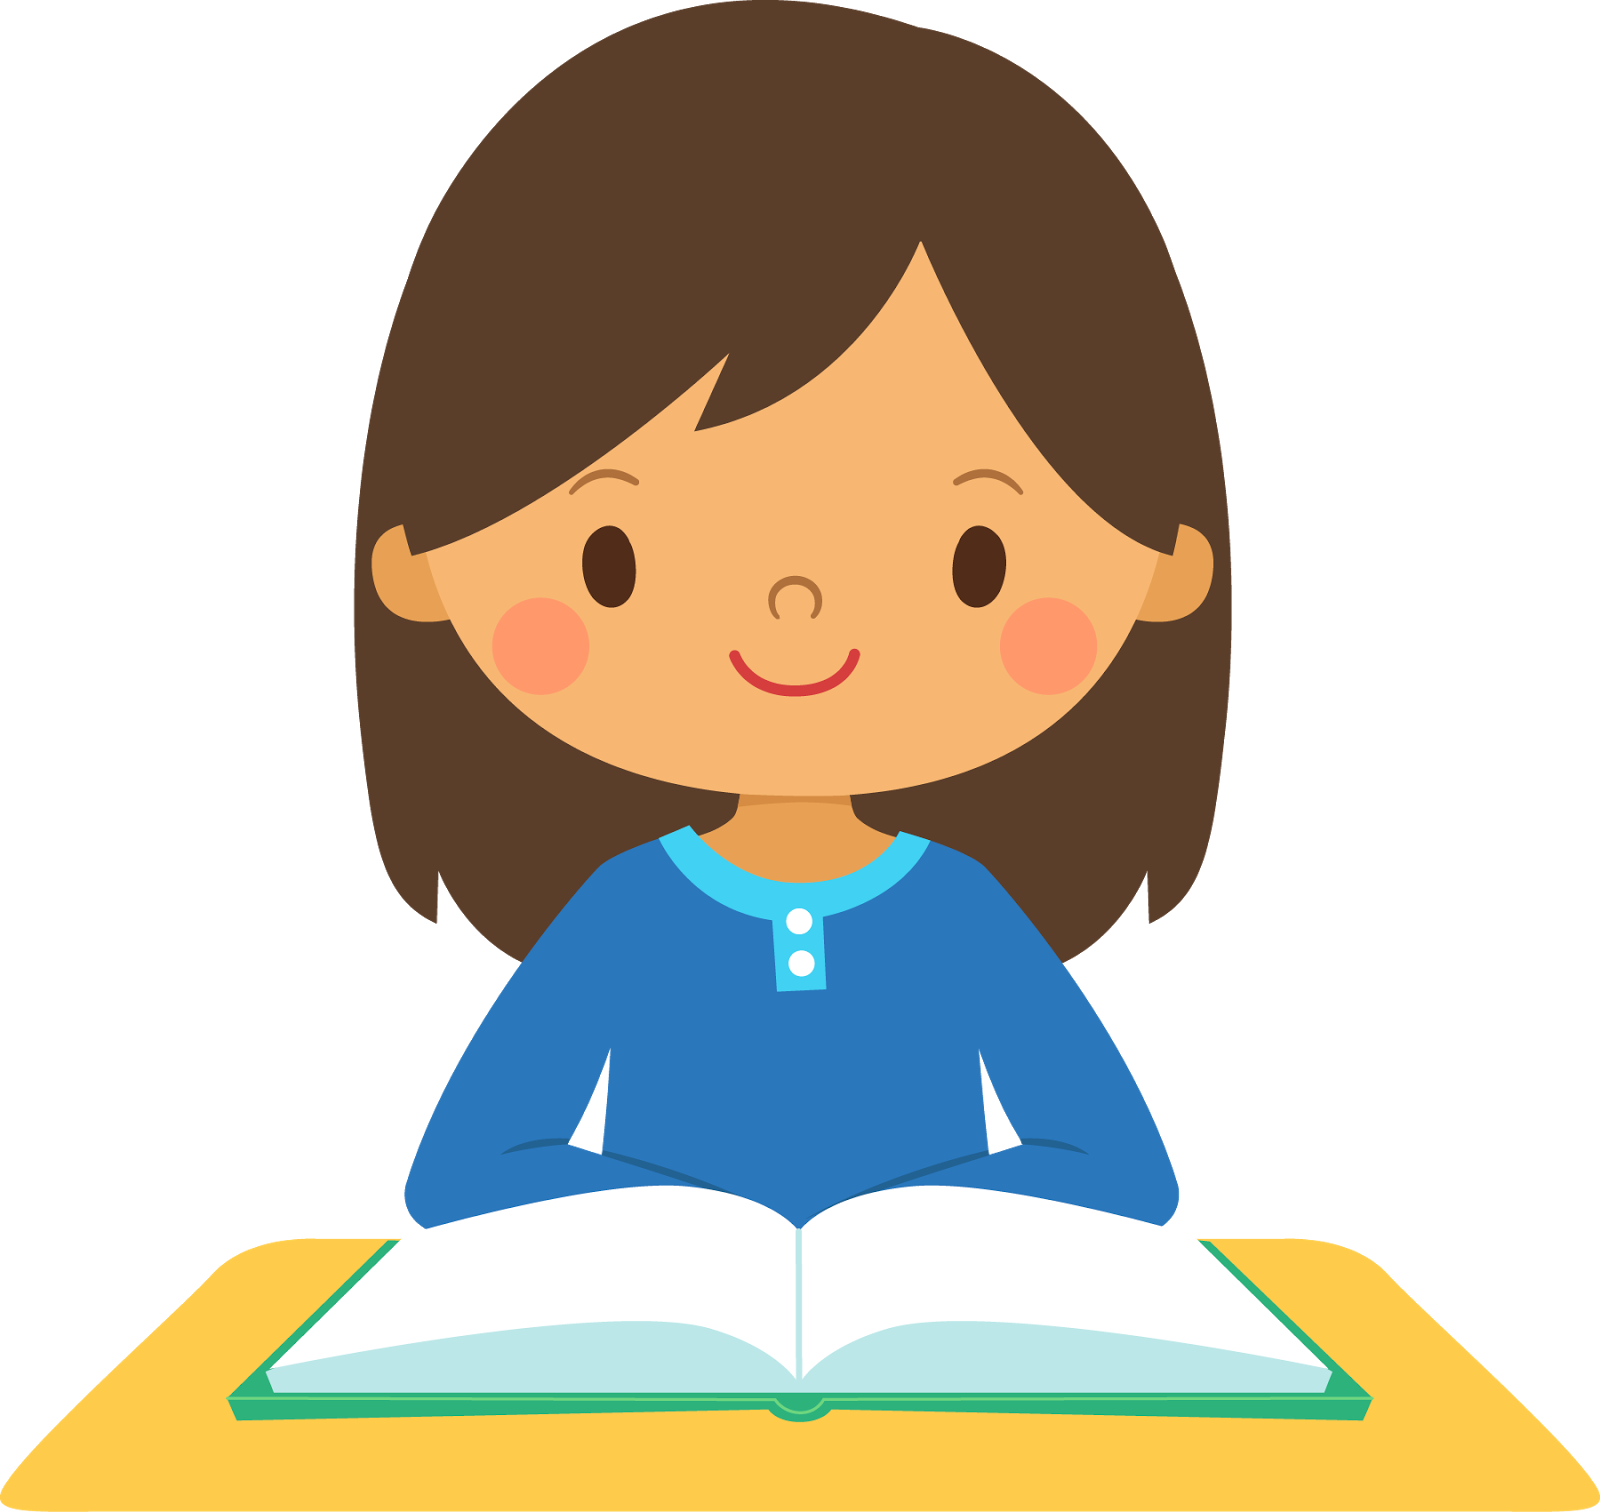 Bedtime story book clipart image free stock smiling girl at a desk with a book | Books & Libraries | Pinterest ... image free stock